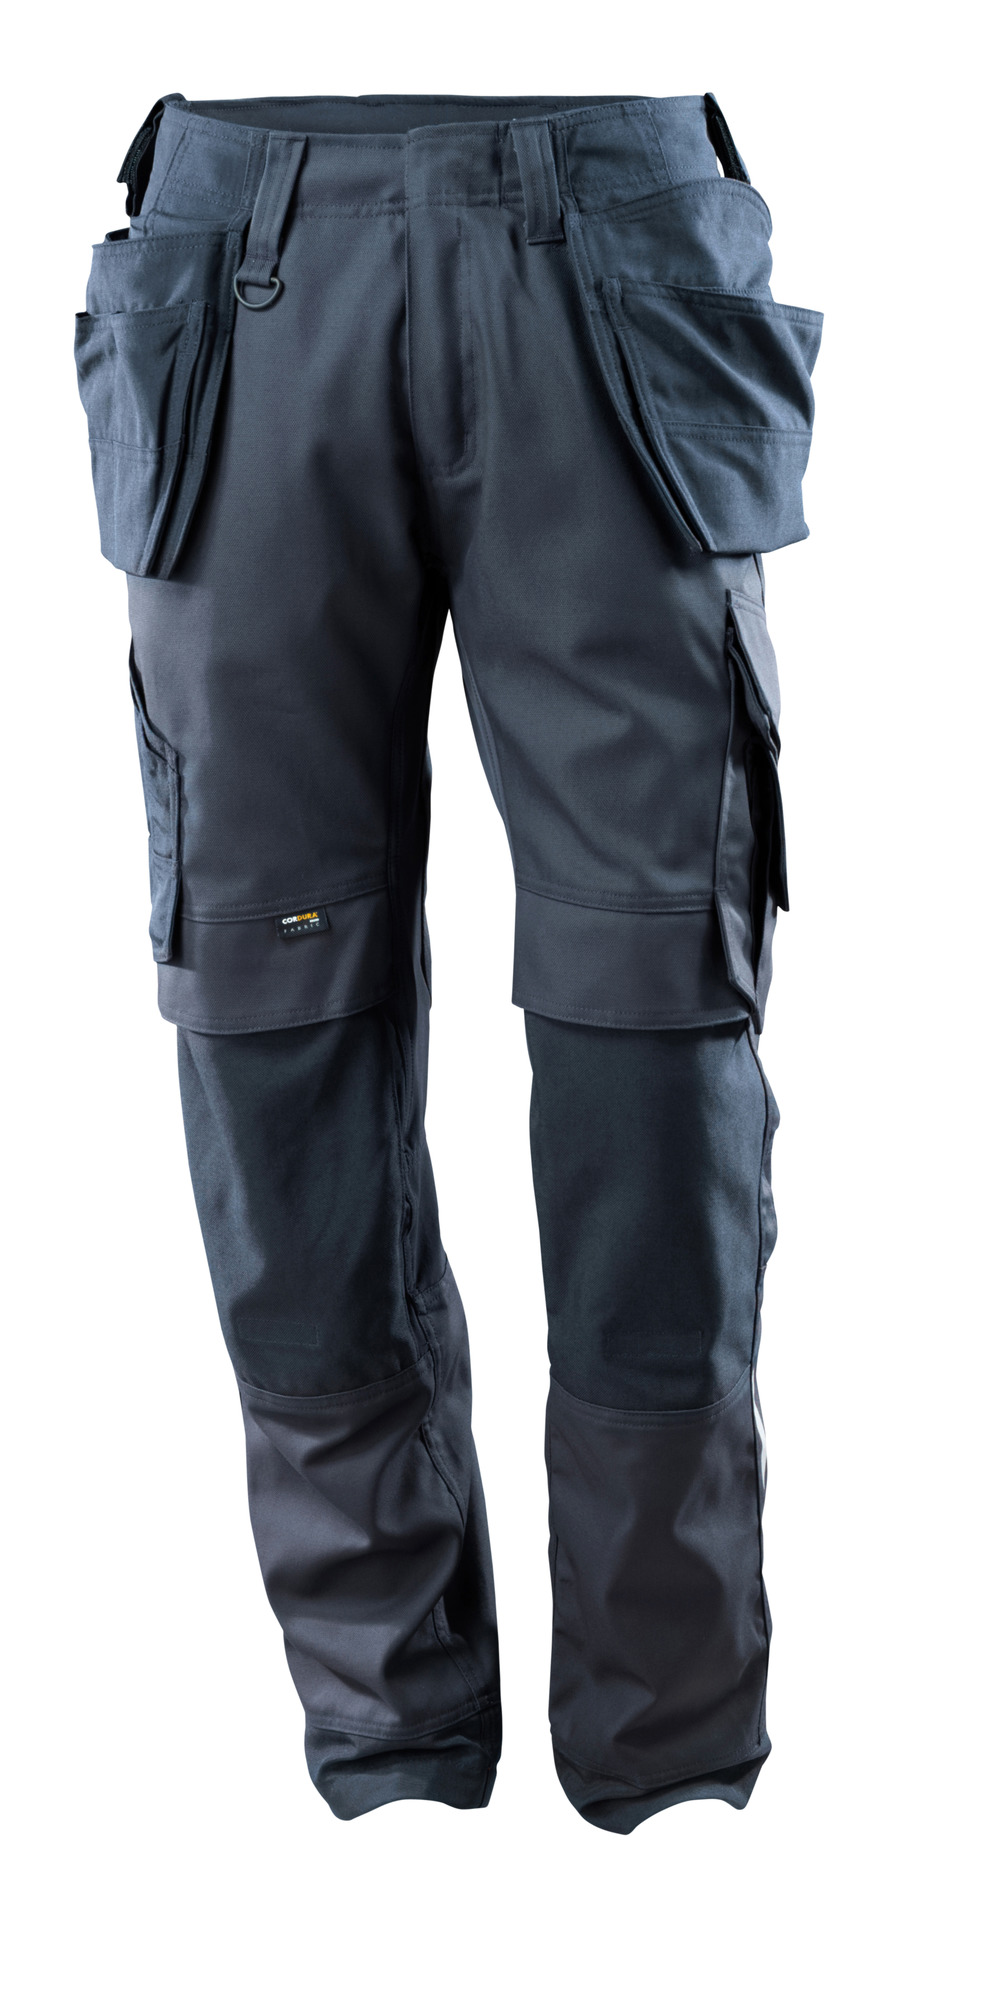 15031-010-010 Trousers with kneepad pockets and holster pockets - dark navy